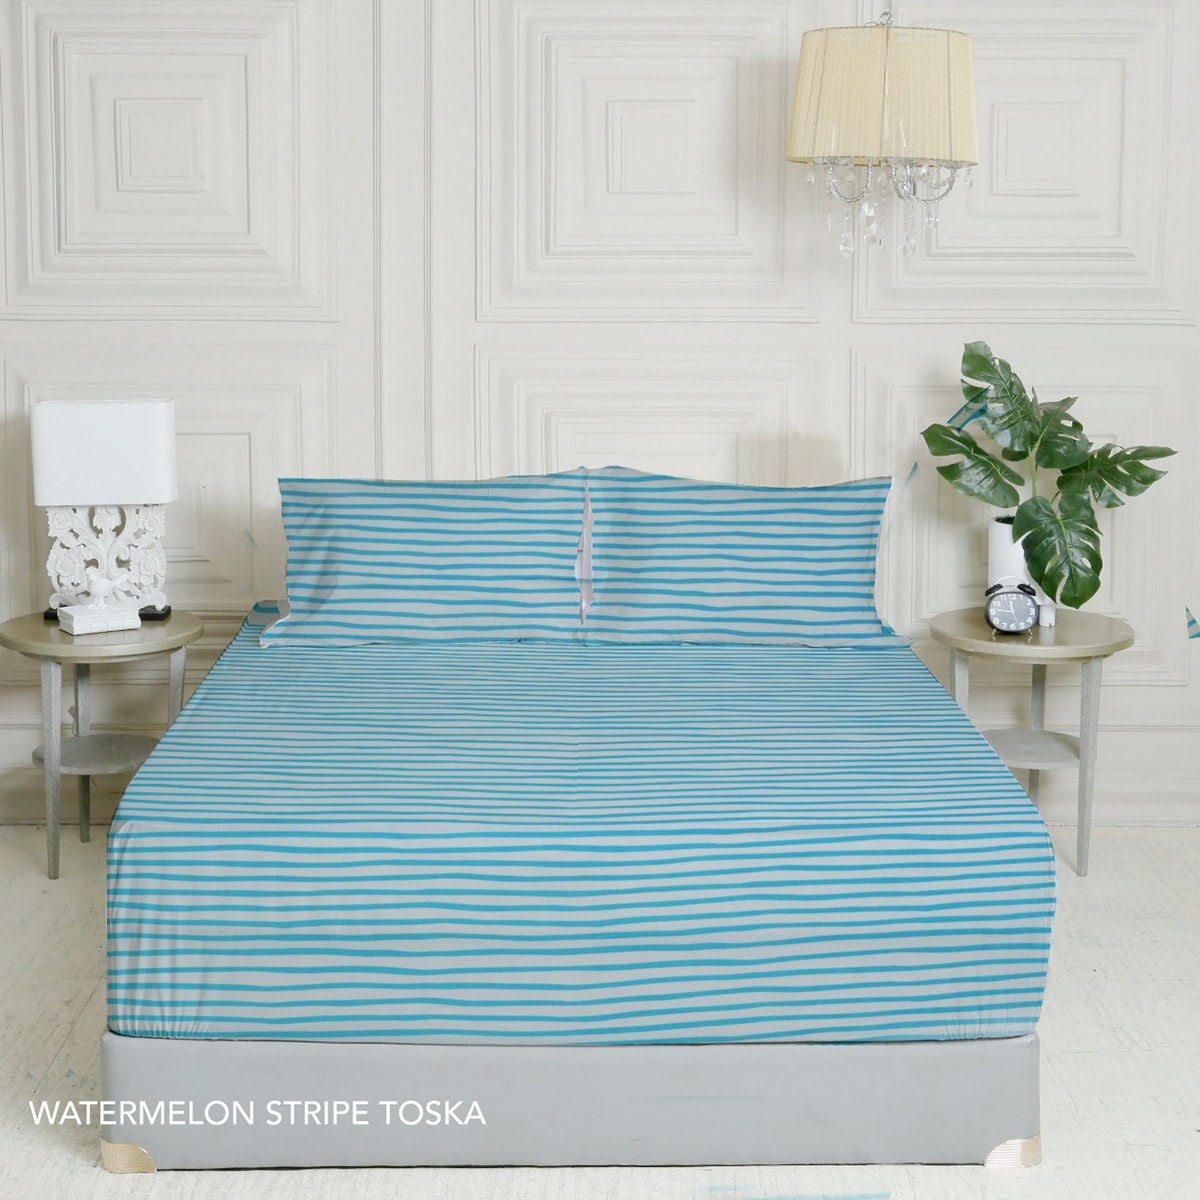 King Rabbit 7STAR Set Sprei Sarung Bantal Single Motif Watermelon Strip - Toska Uk 100x200x40cm